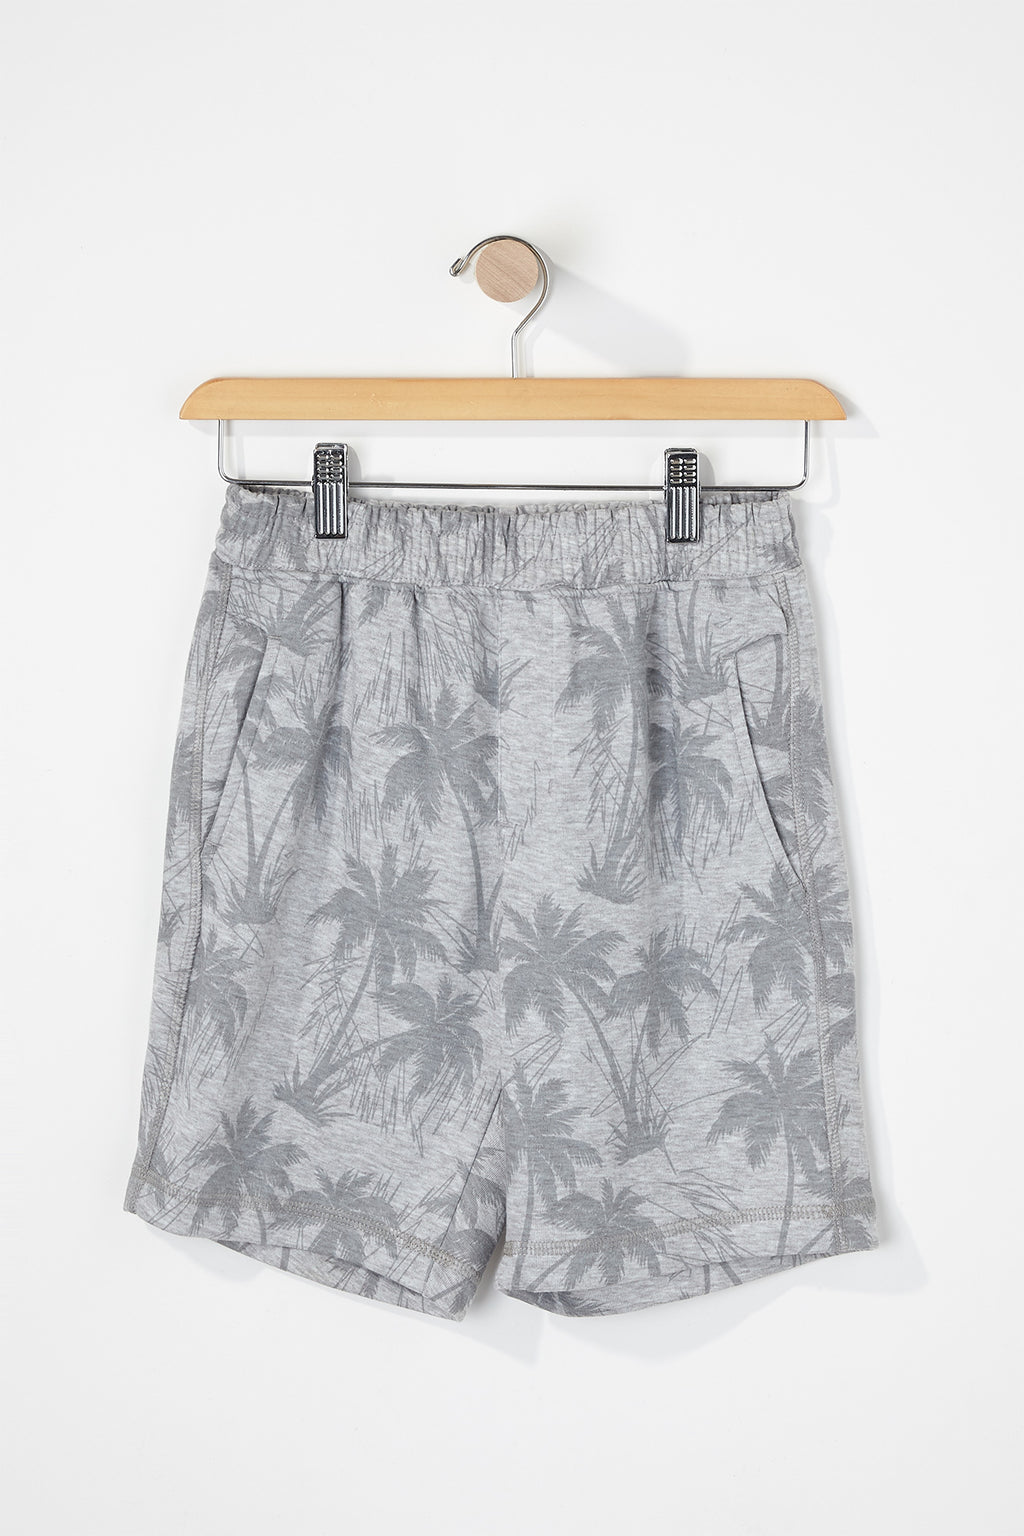 West49 Boys Palm Tree Print Jogger Shorts